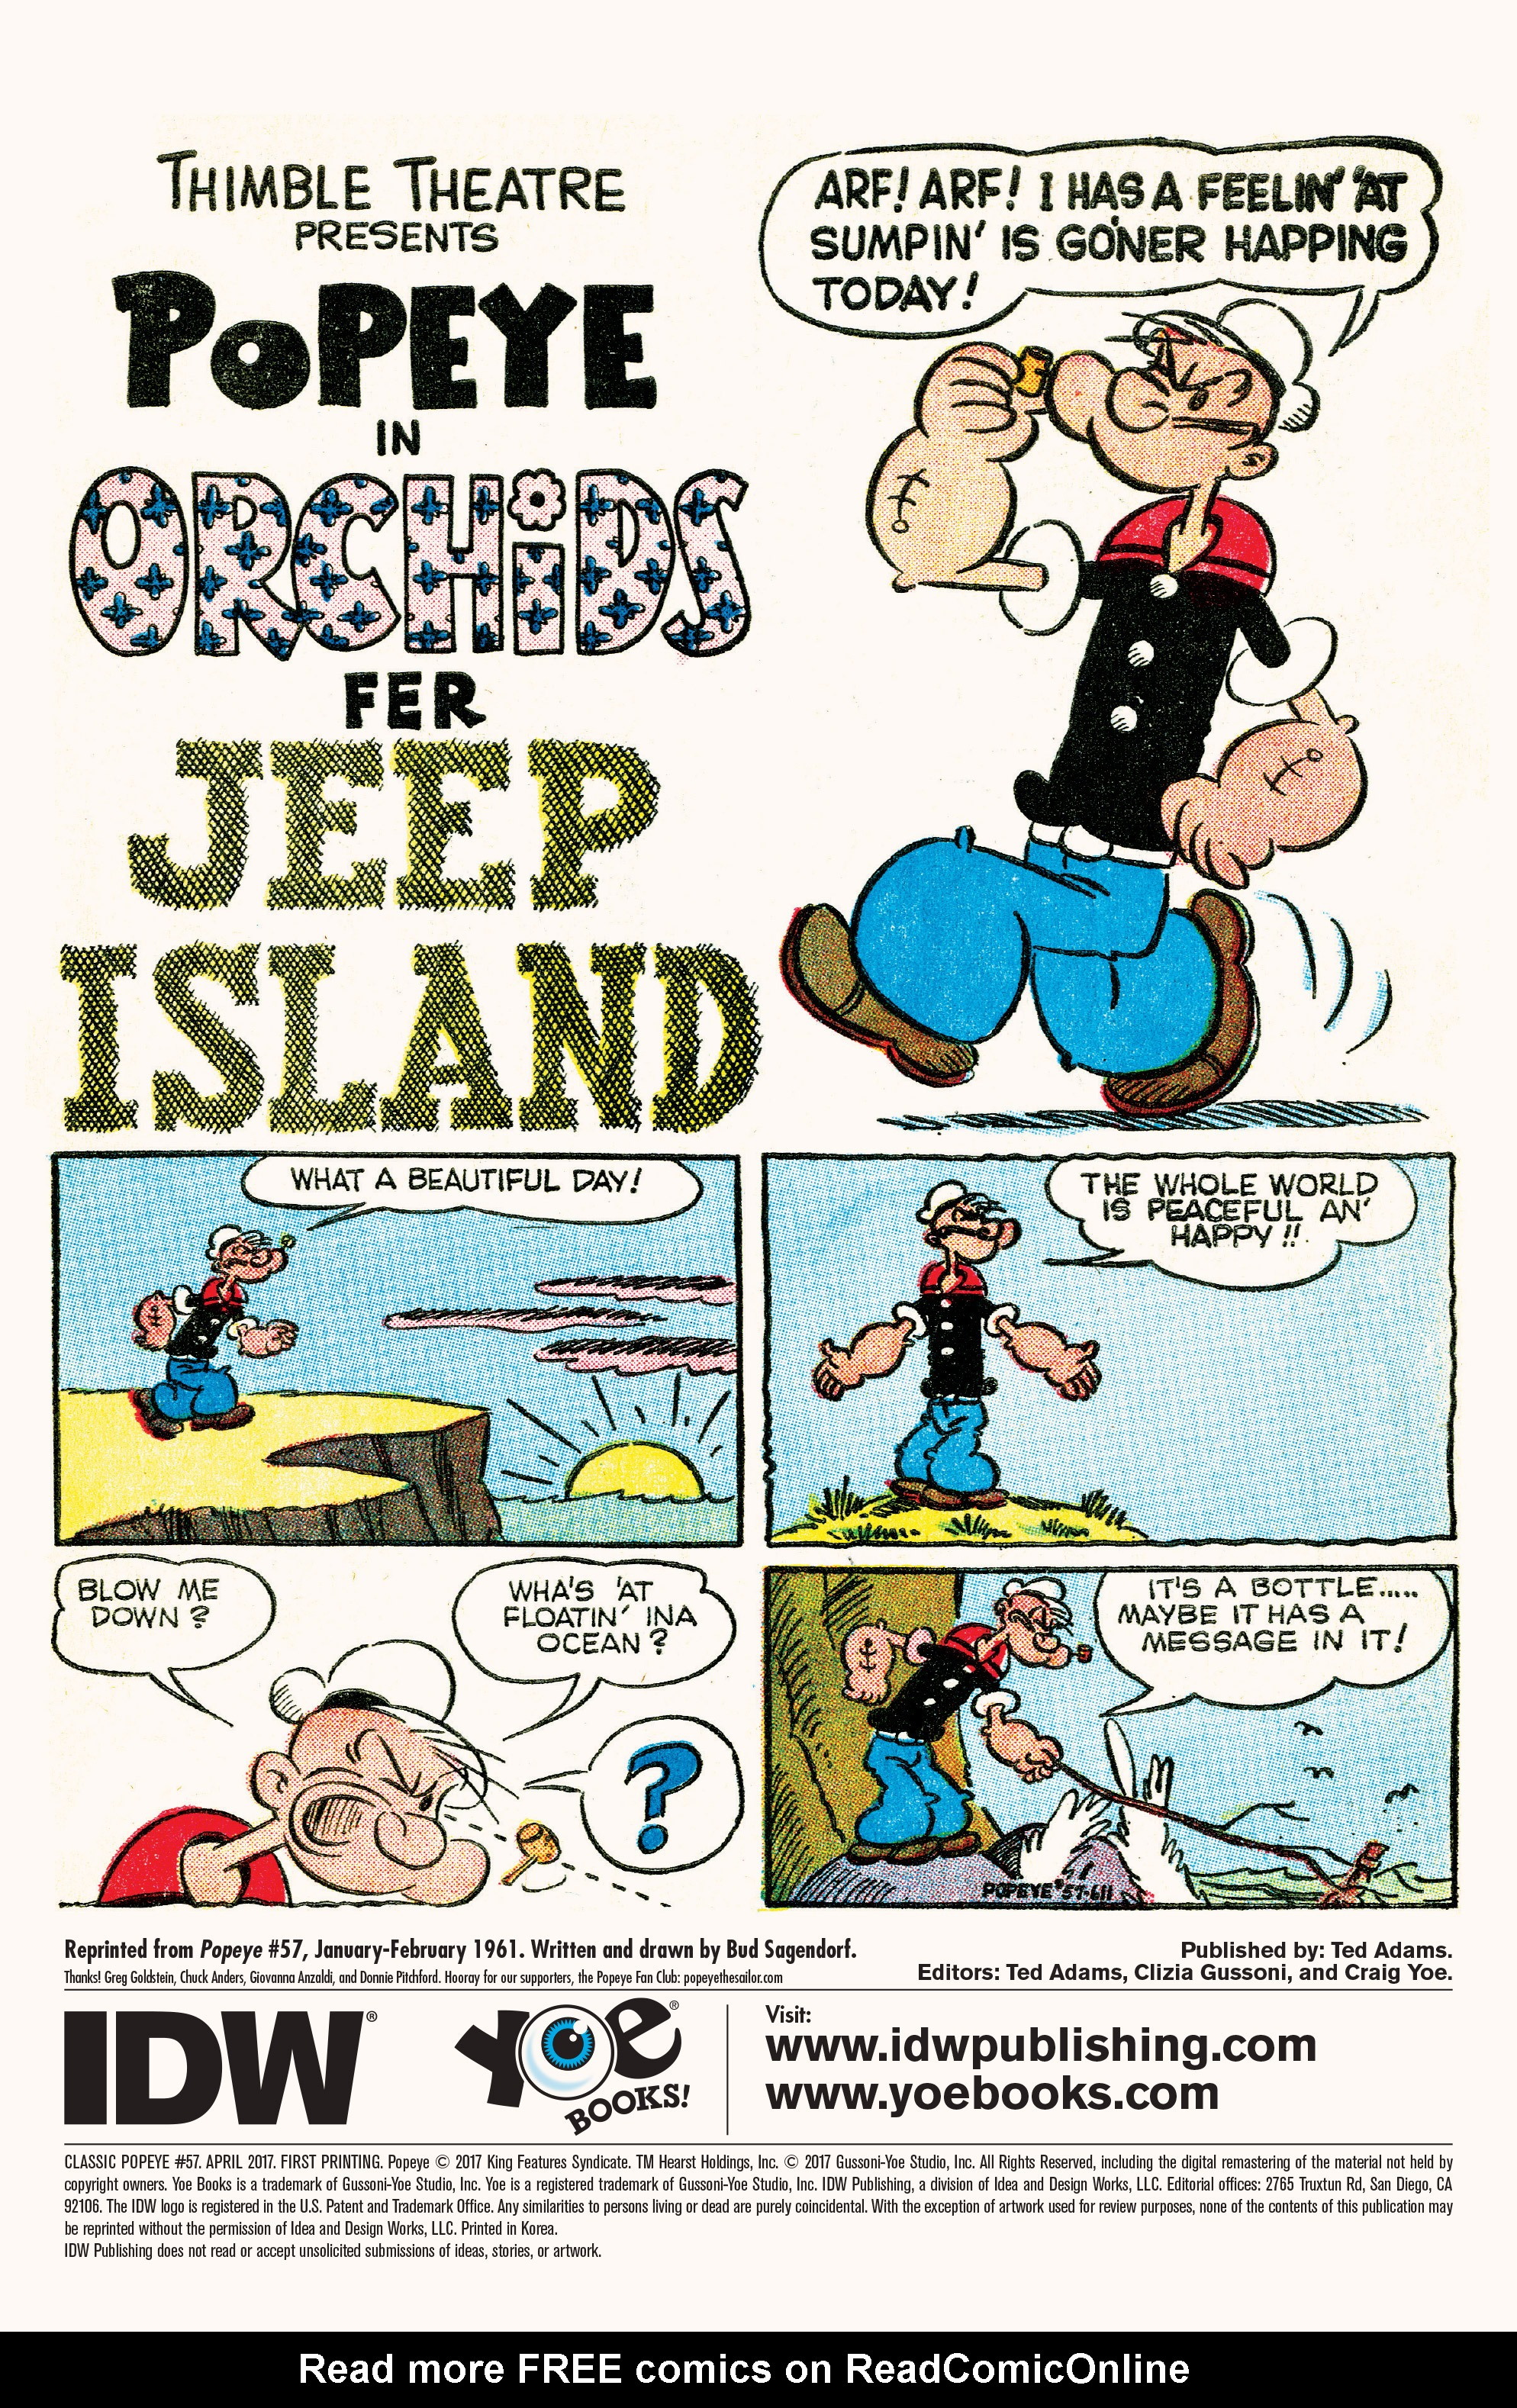 Read online Classic Popeye comic -  Issue #57 - 3